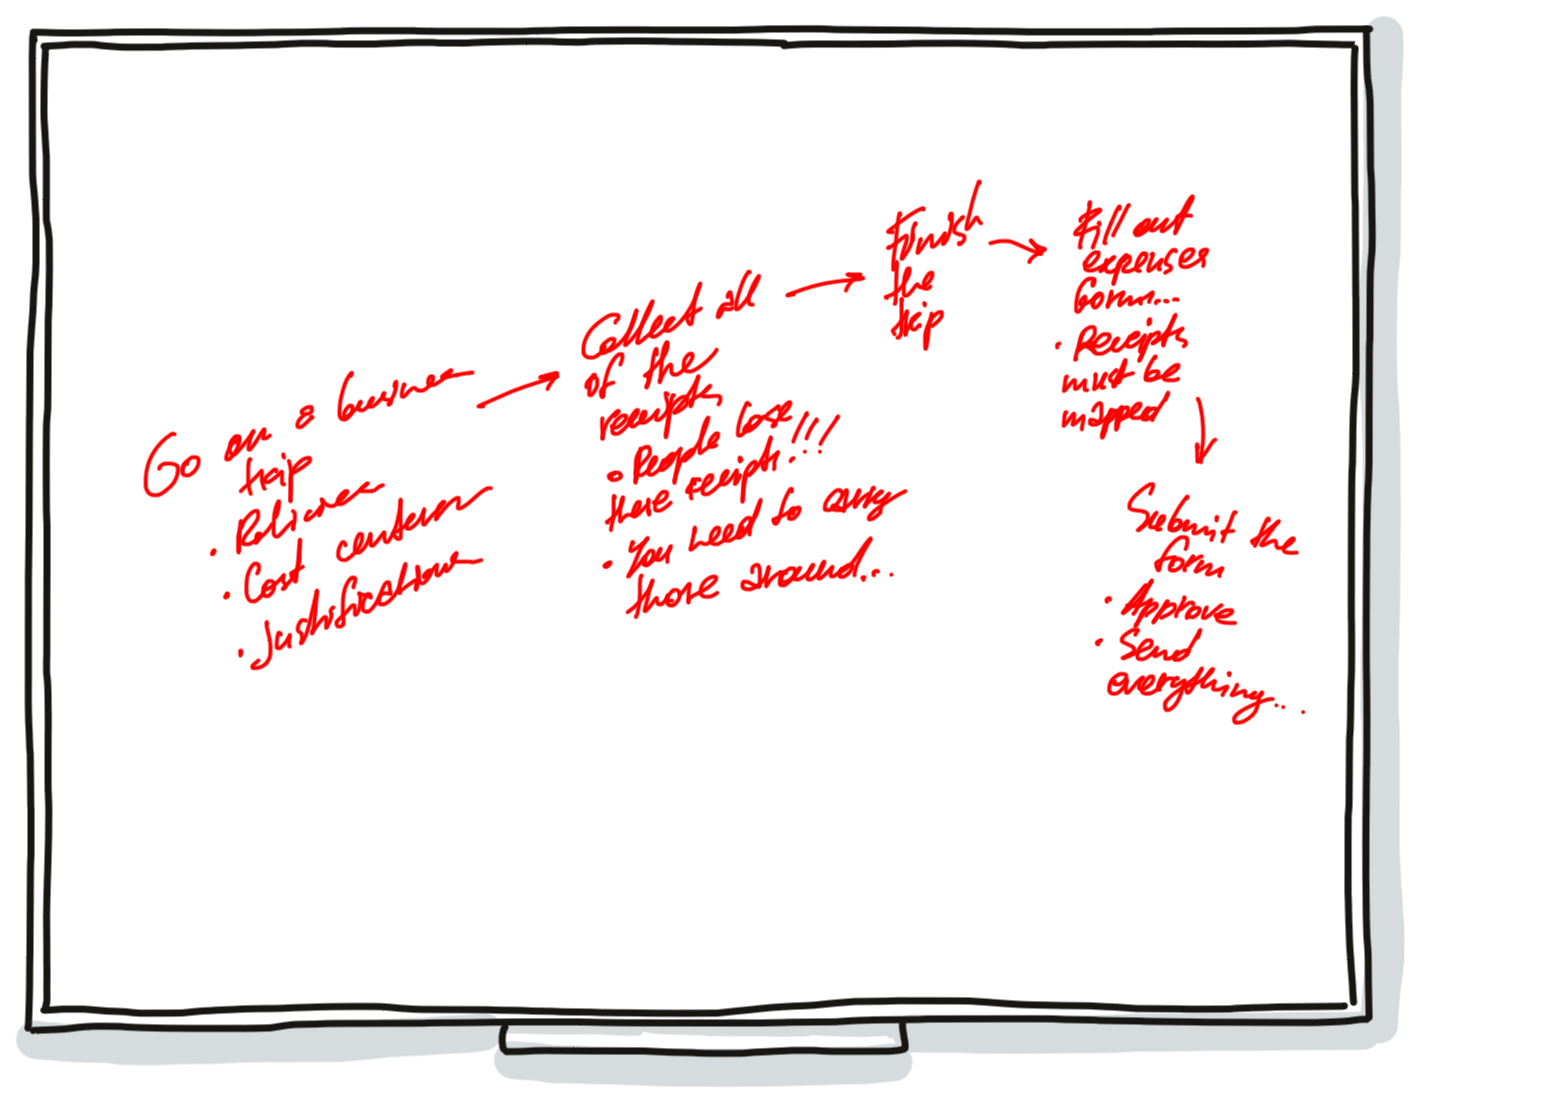 Whiteboard vector back to school. Learn these two simple